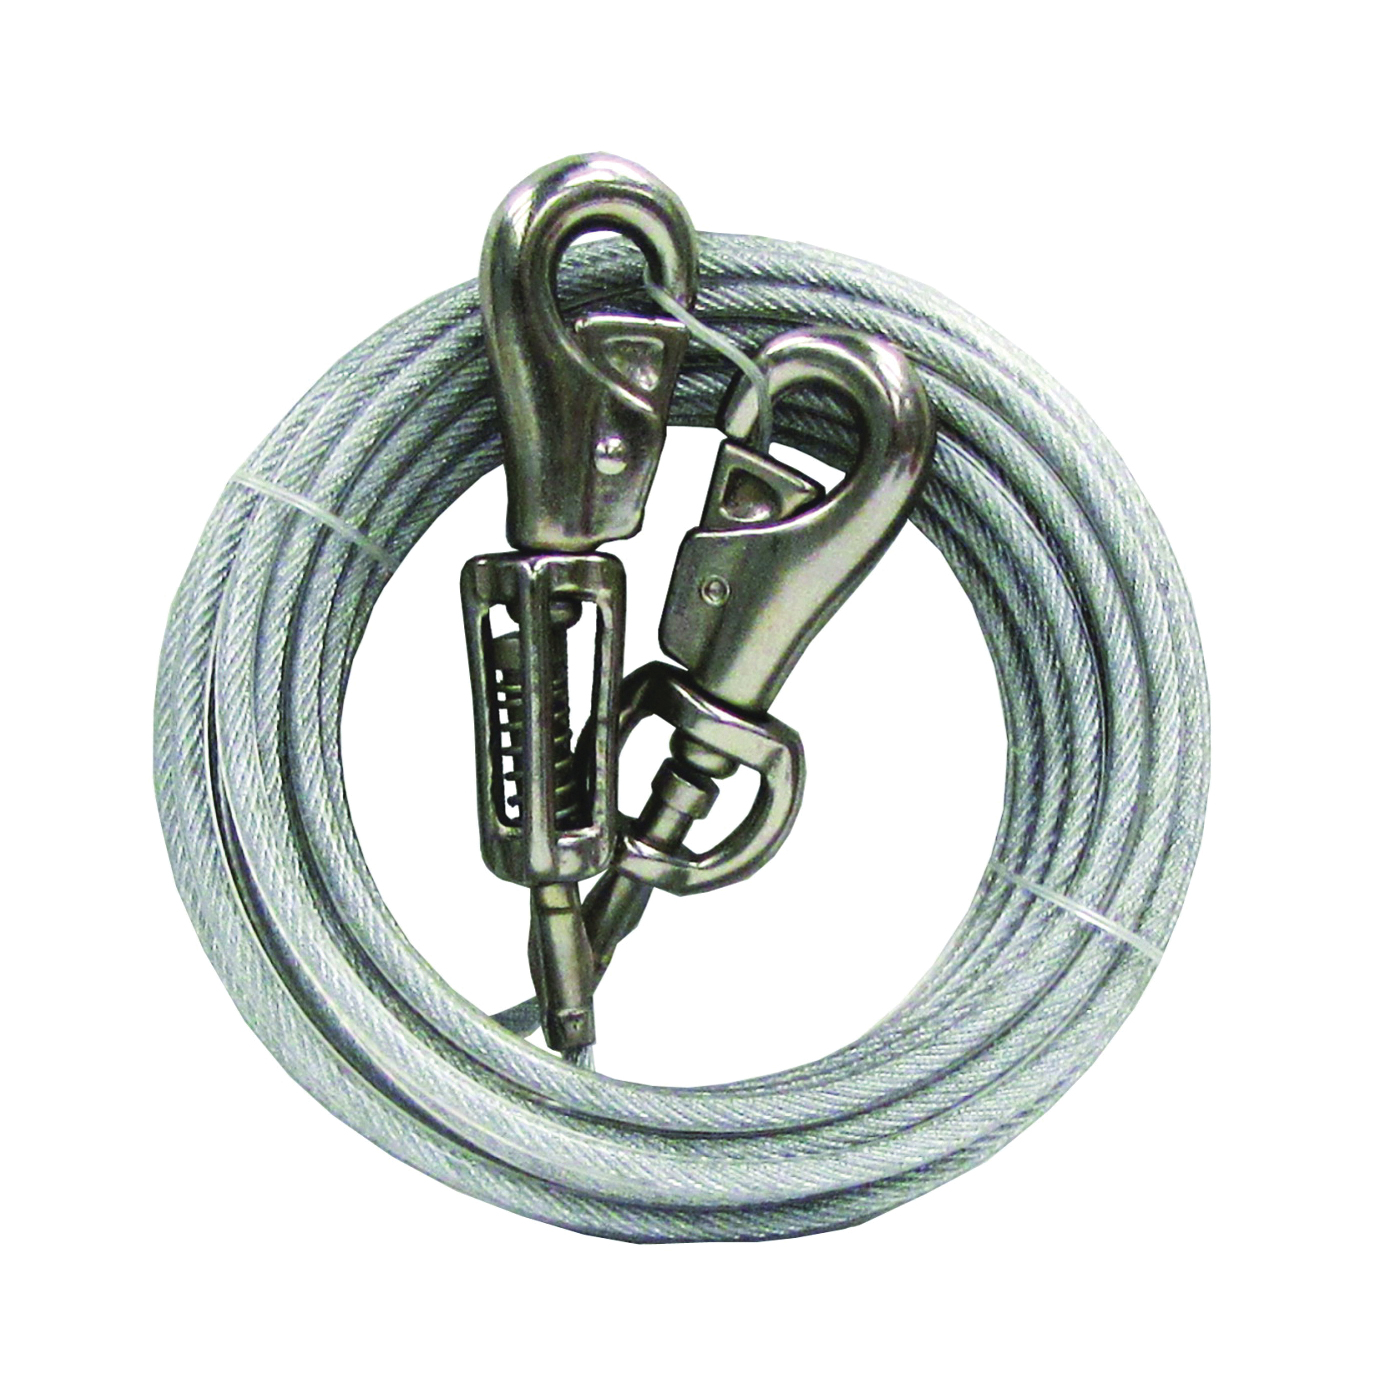 Picture of Boss Pet PDQ Q5730SPG99 Tie-Out with Spring, 30 ft L Belt/Cable, For: Extra Large Dogs Up to 125 lb